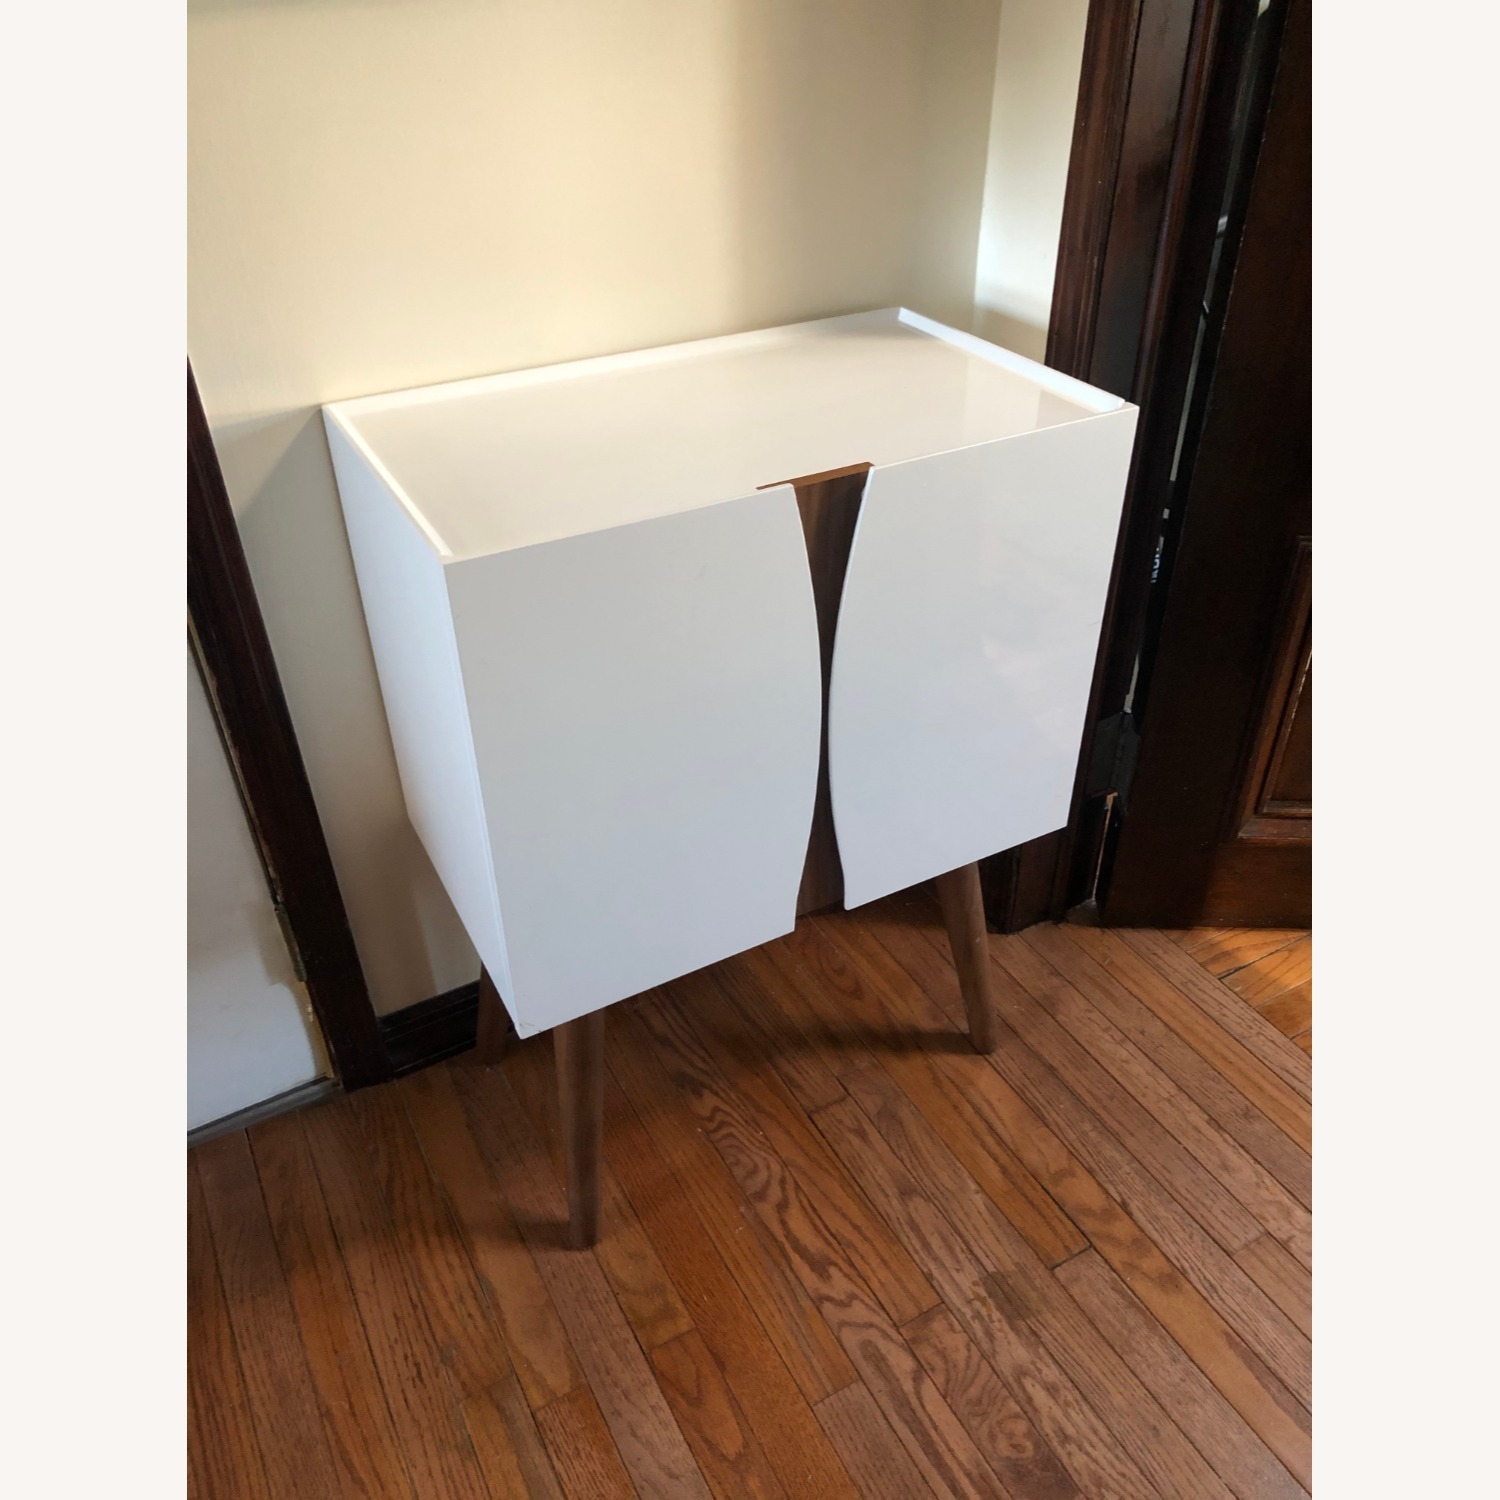 Midcentury Modern White Lacquer and Wood Cabinet - image-1